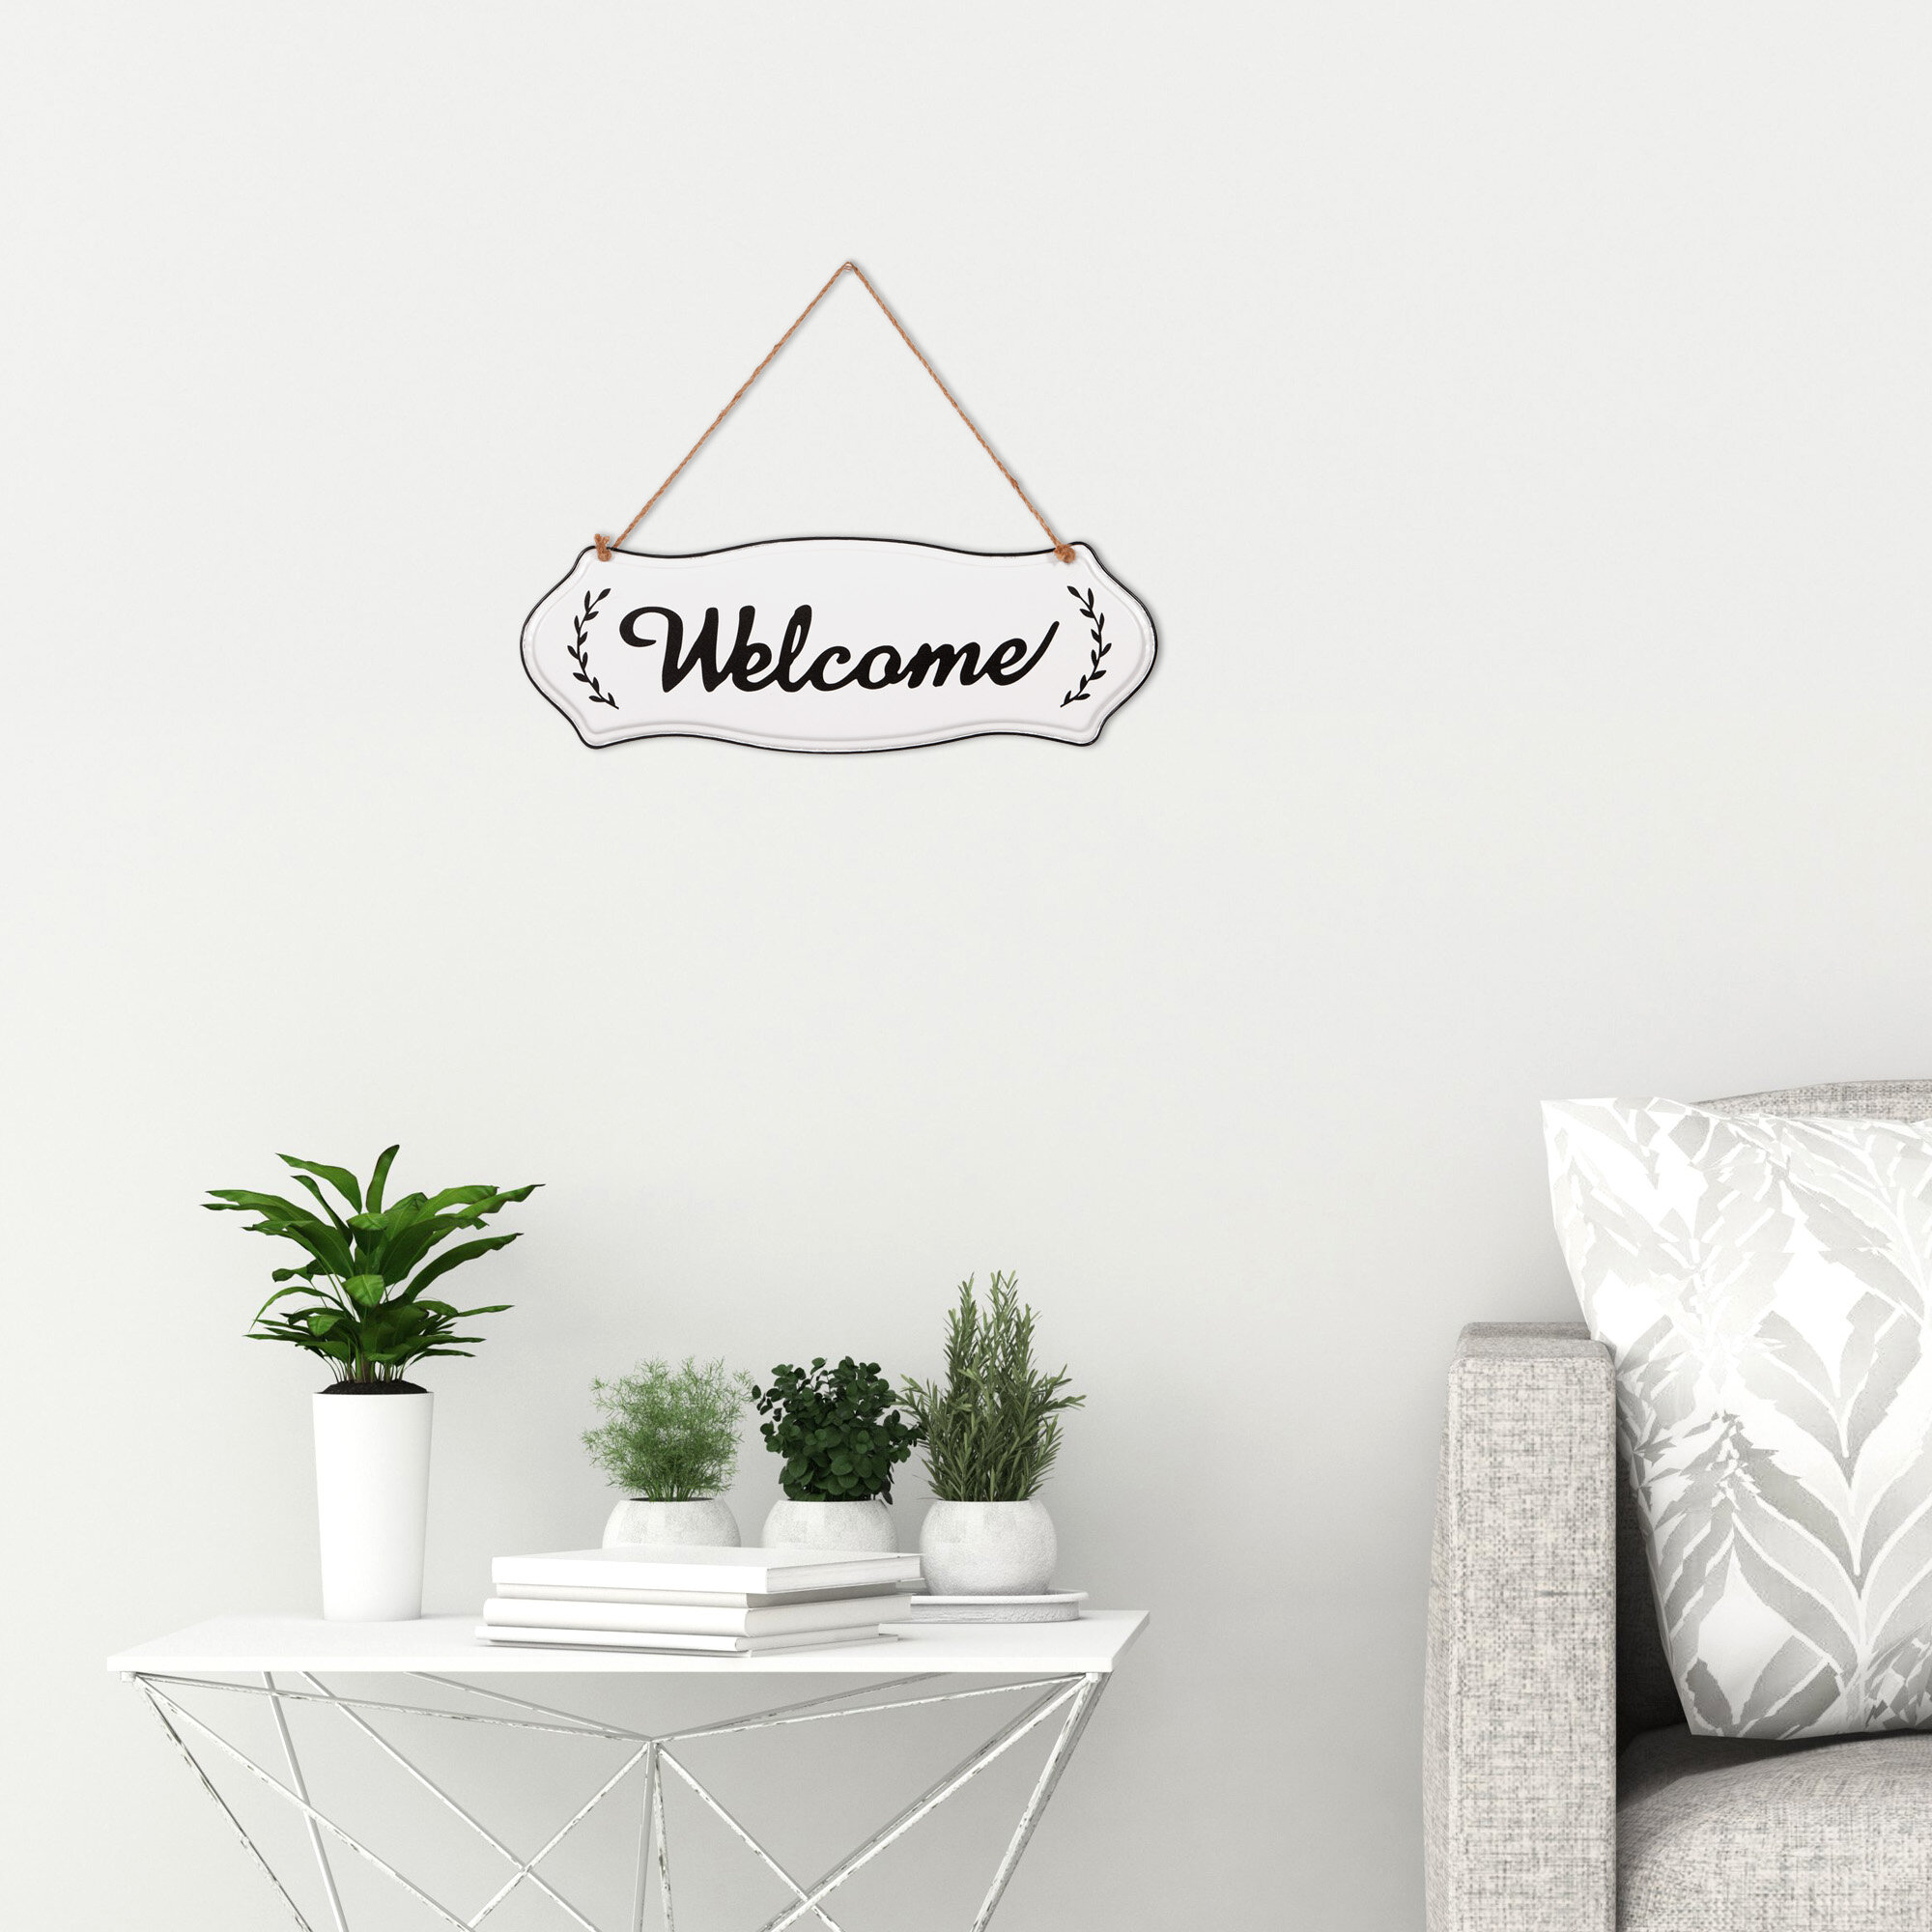 20 Inspirations Of Metal Rope Wall Sign Wall Decor Intended For Metal Rope Wall Sign Wall Decor (View 11 of 30)